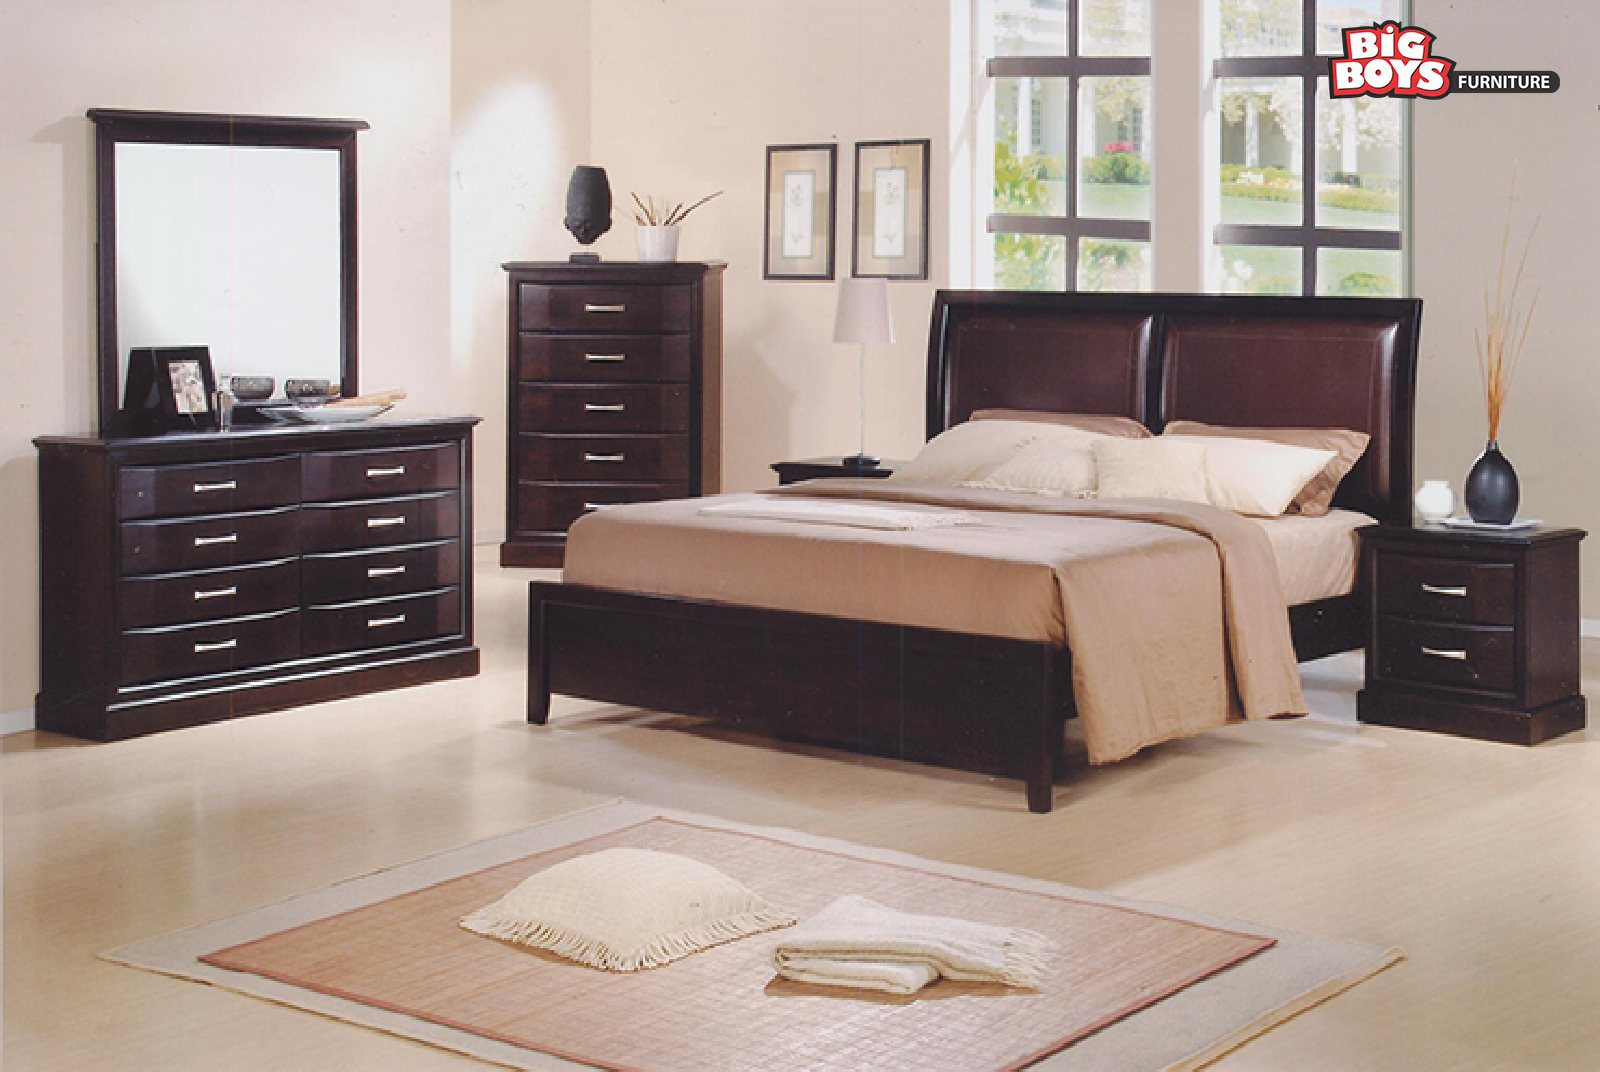 056-Big-Boys-Furniture-Delta-Emily-bedroom-set0811